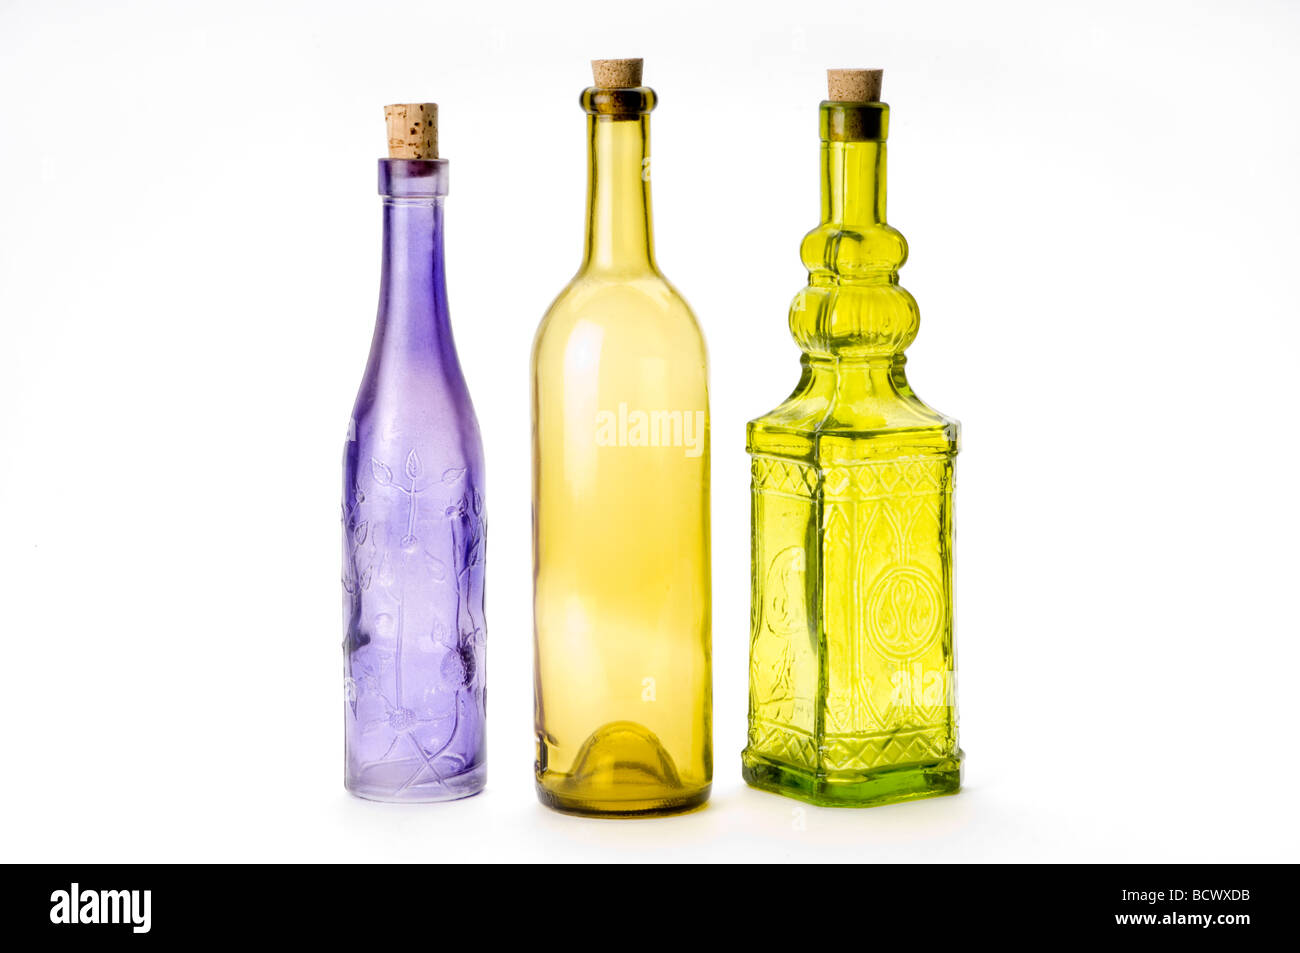 colorful glass bottles on white - Stock Image